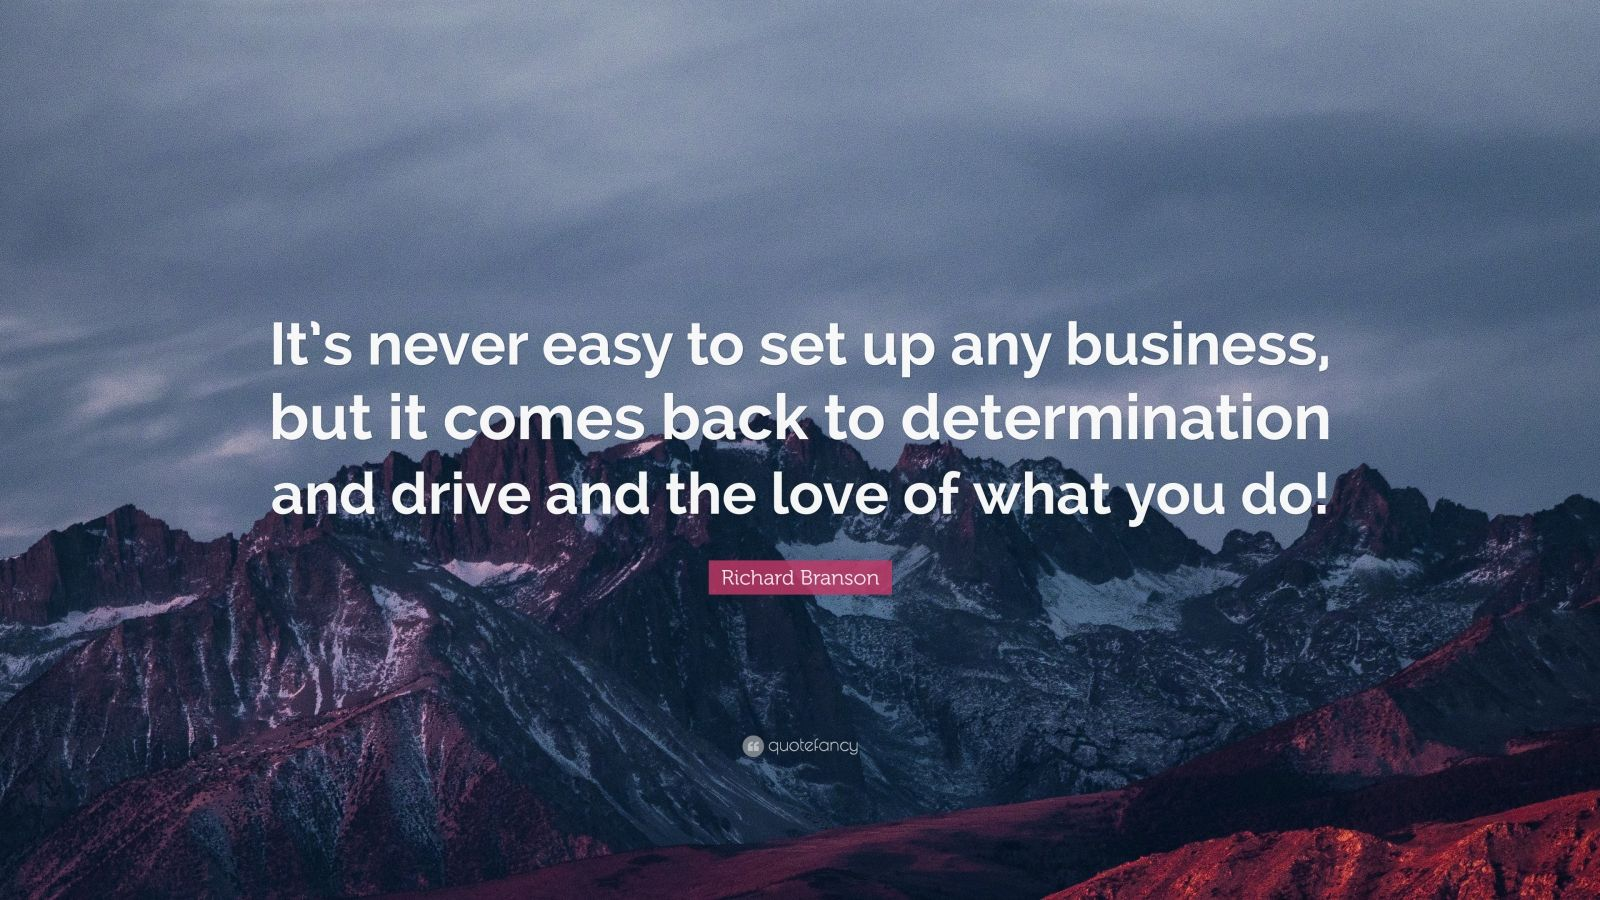 "Richard Branson Quote: ""It's never easy to set up any business, but it comes back to determination and drive and the love of what you do!"""